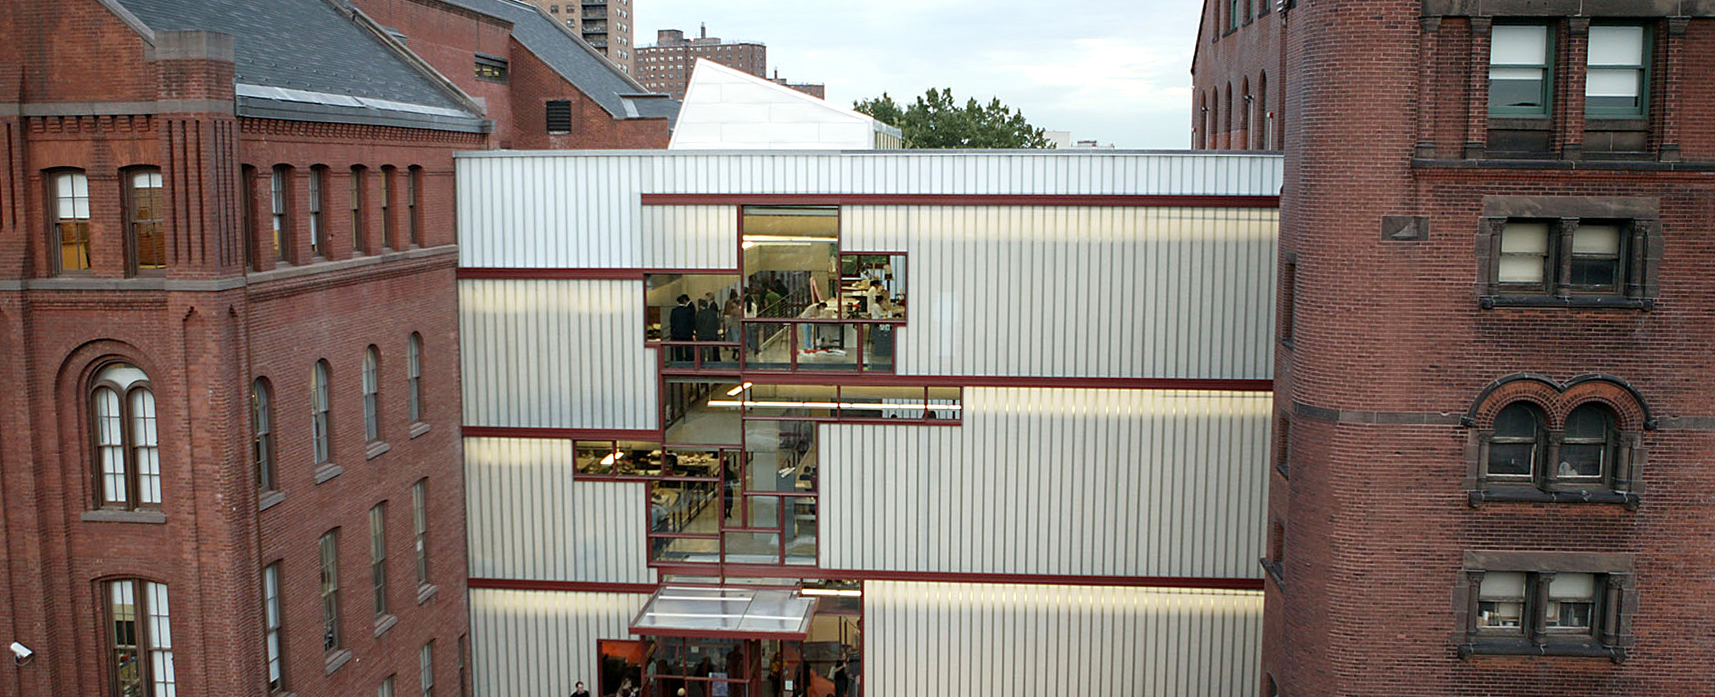 Design building at Pratt campus